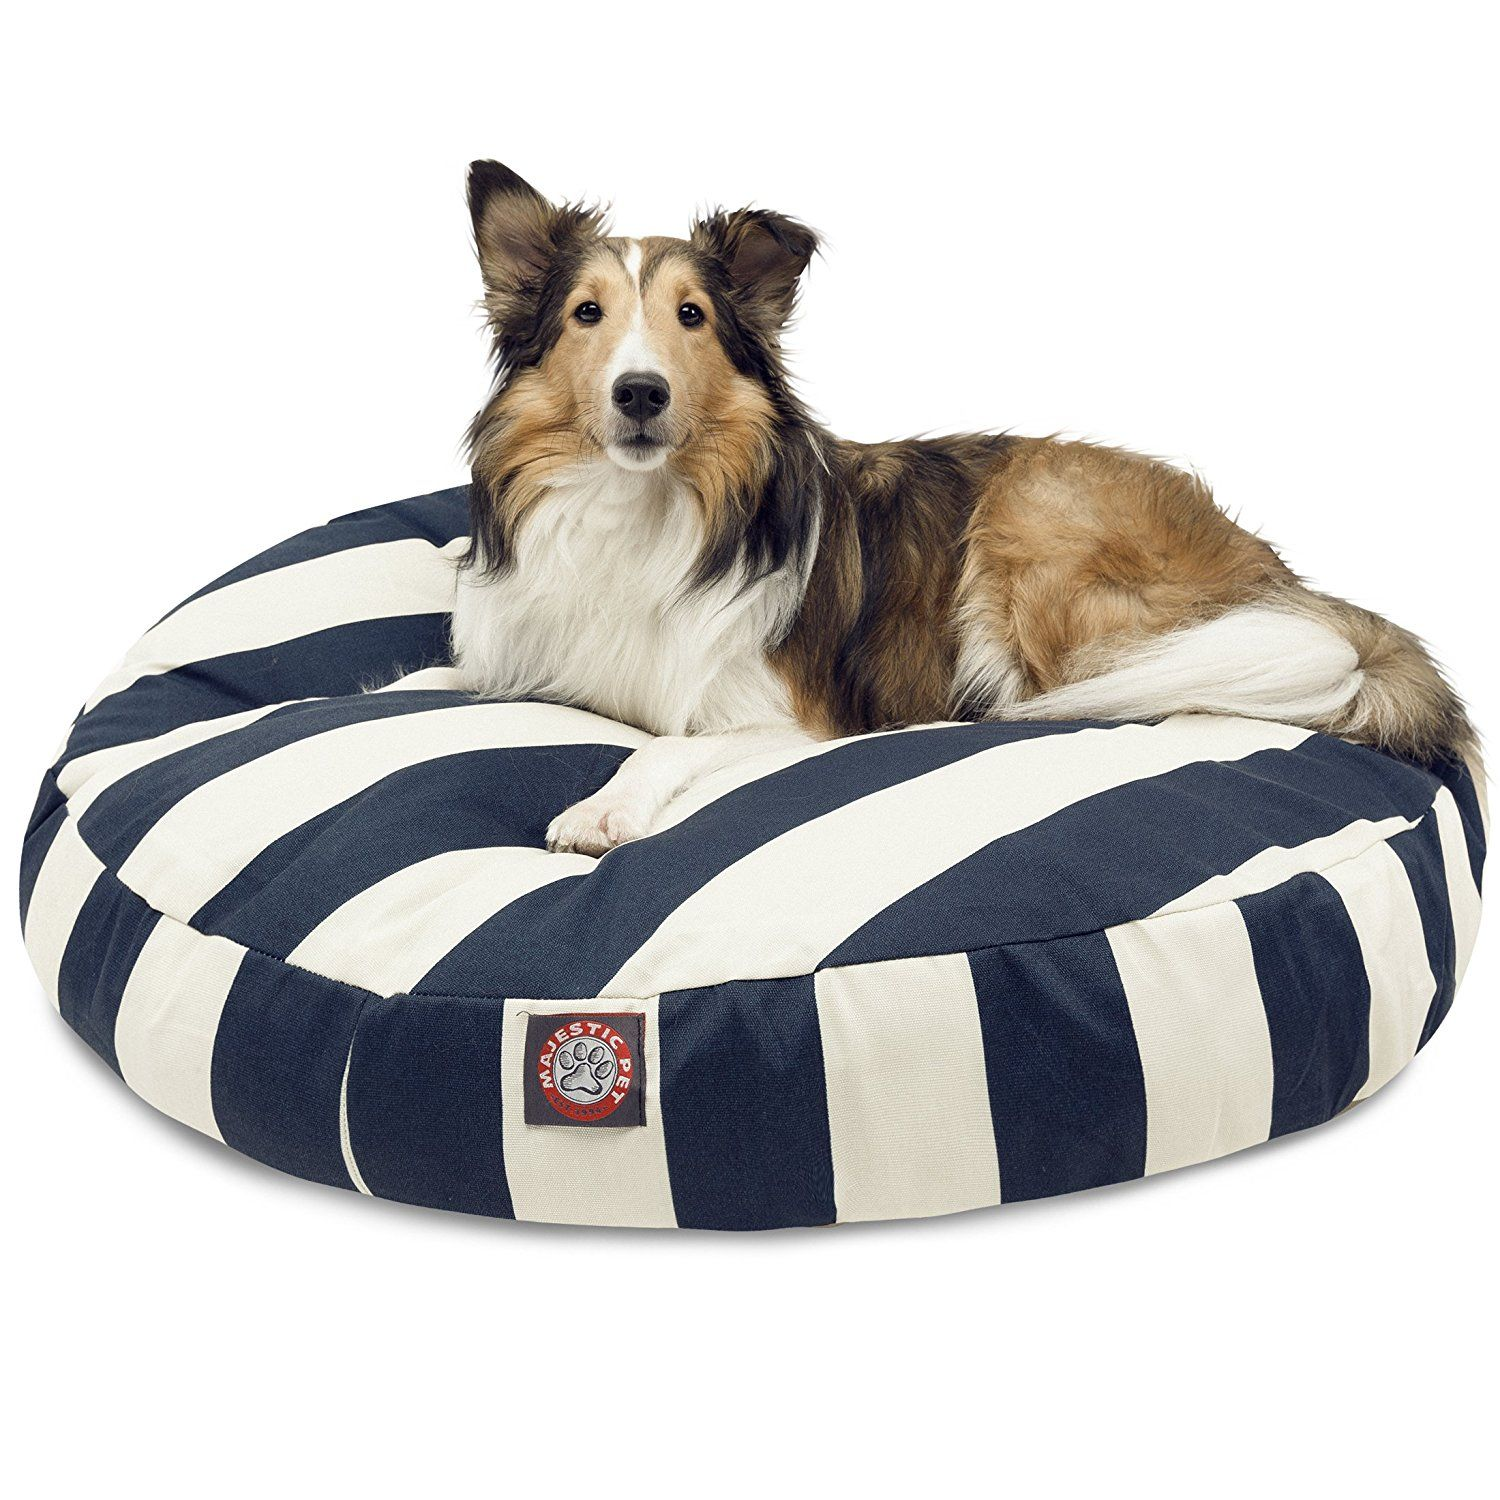 Majestic Pet Striped Round Pet Bed Special Product Just For You See It Now Dog Pet Beds Round Dog Bed Majestic Pet